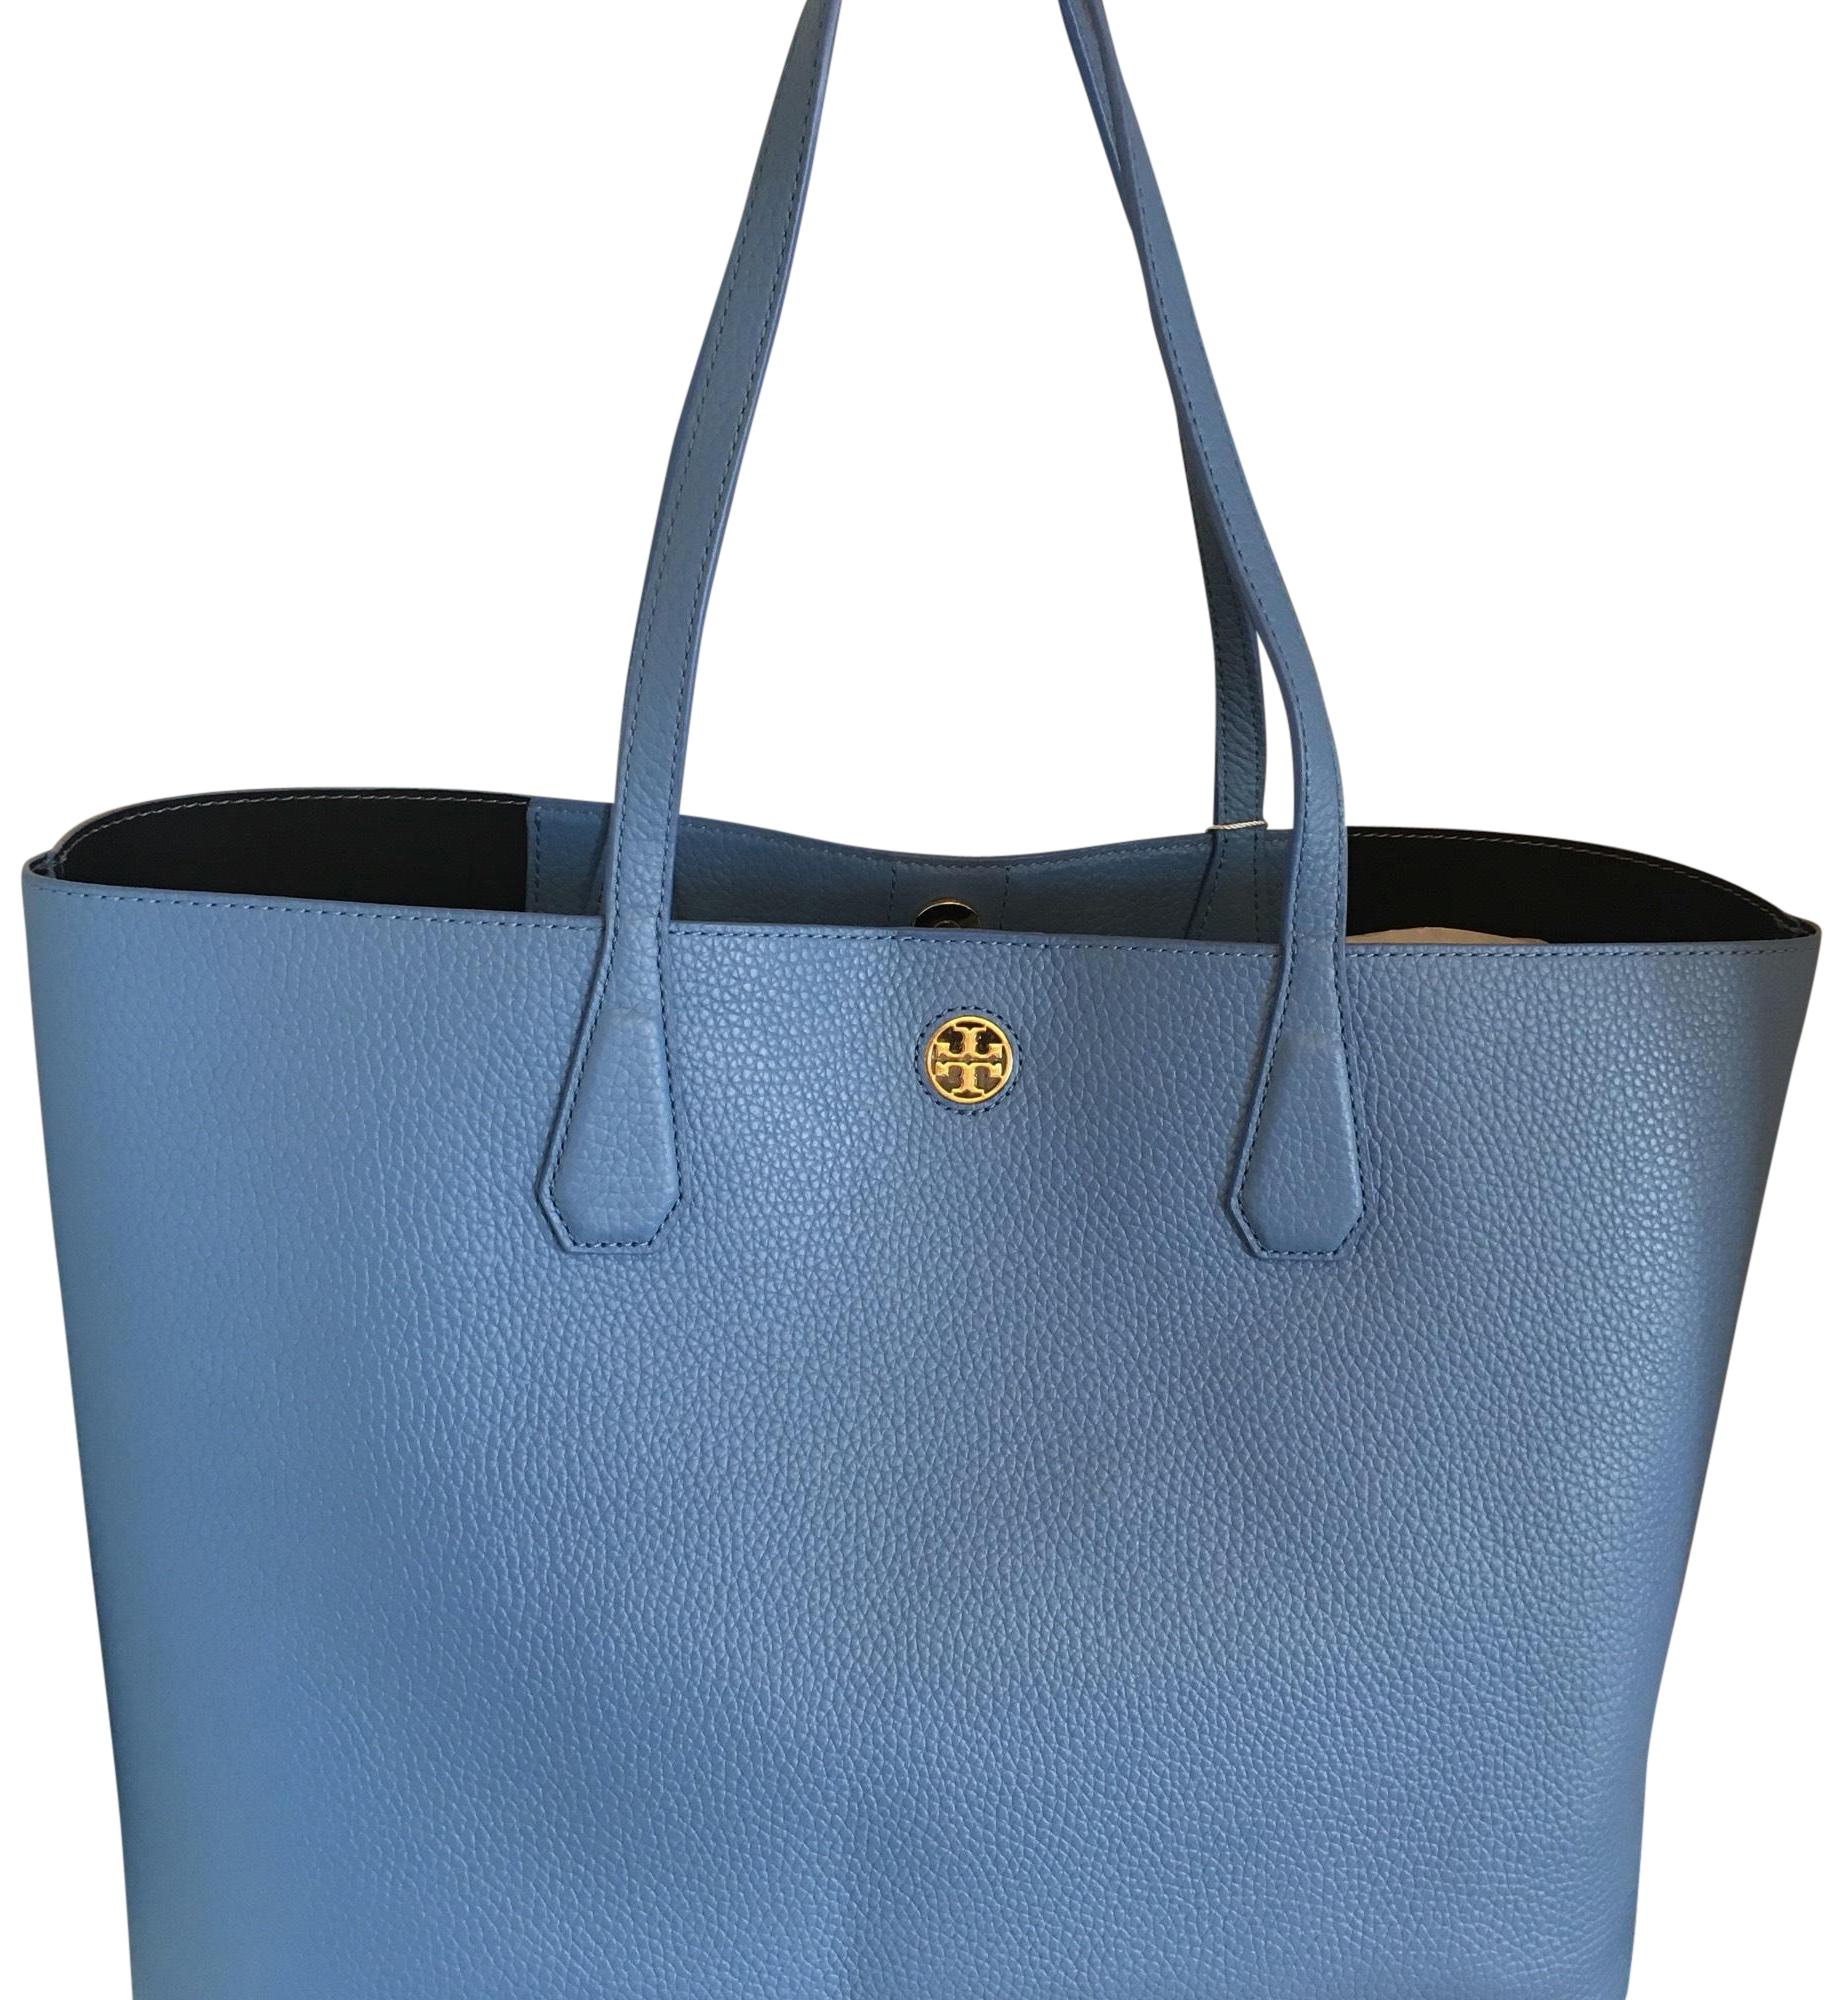 0f881b2a616 1x1 39b19 37735; netherlands tory burch tote in montego blue tory navy  685ed daeaf